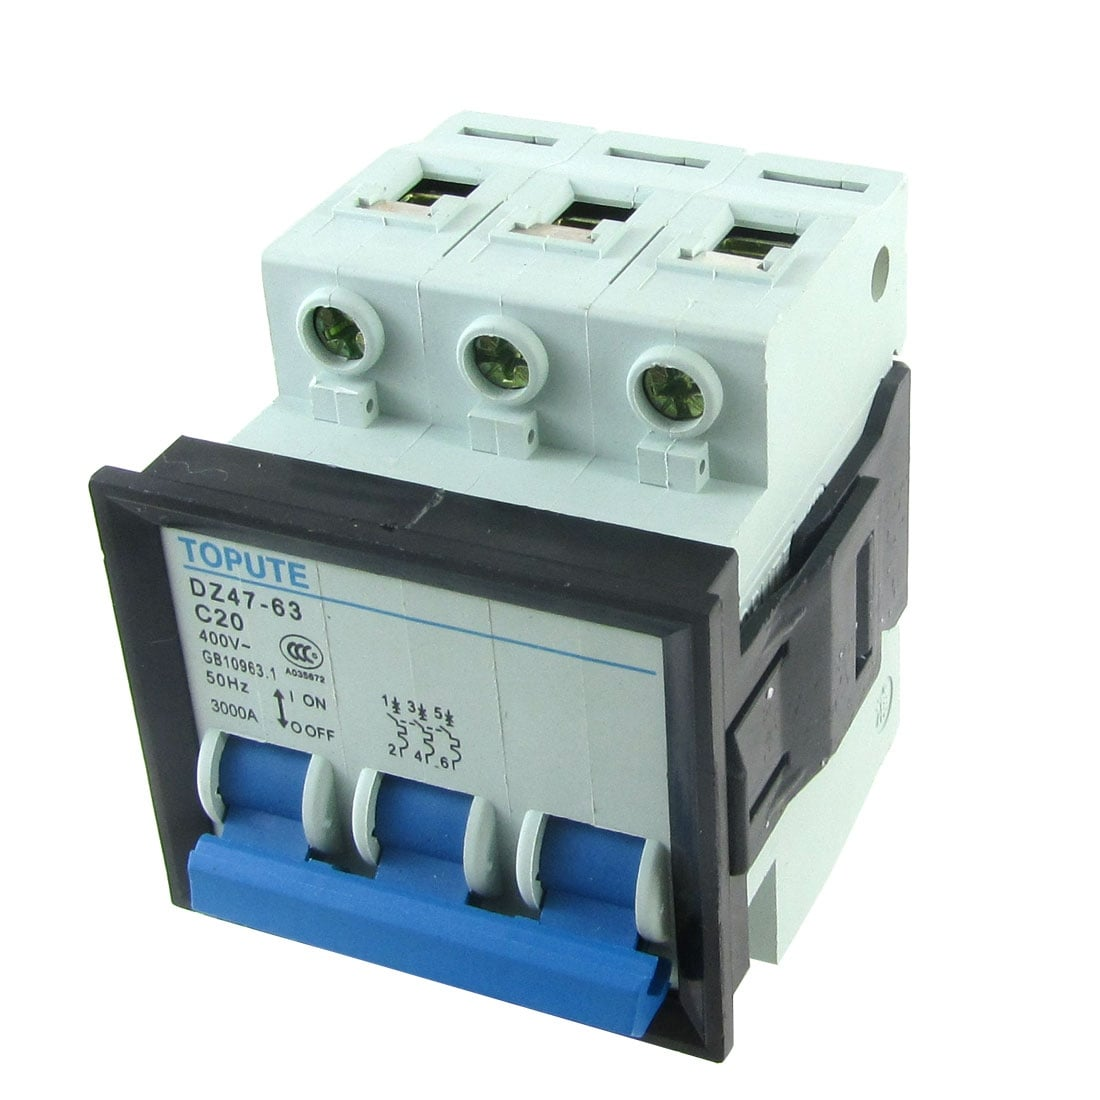 Shop Unique Bargains 20a Ac 400v 3 Poles 3p Mcb Circuit Breaker Dz47 House China High Quality 63 C20 Free Shipping On Orders Over 45 18389126